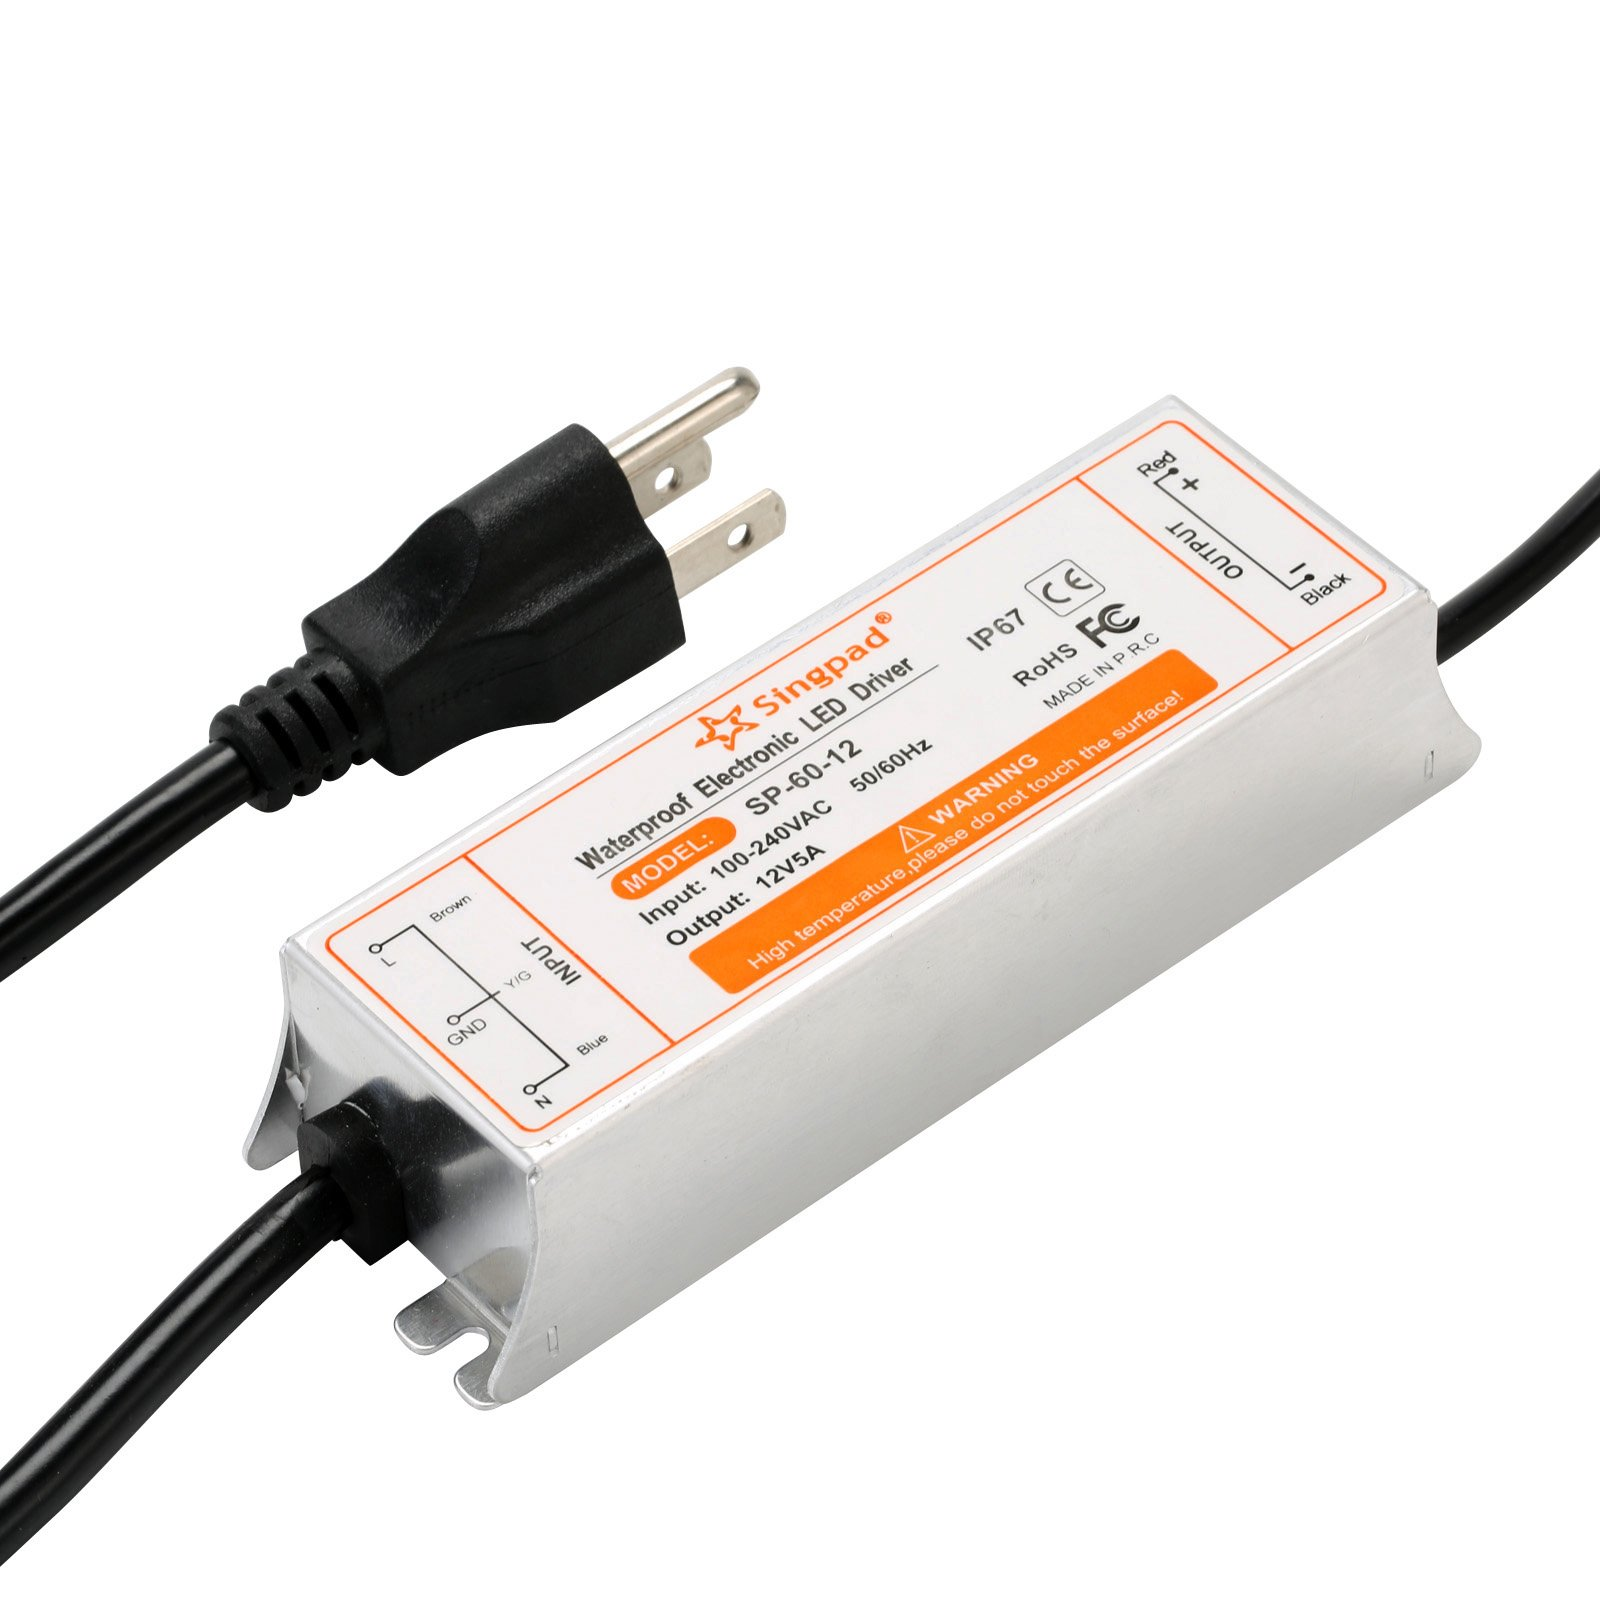 details about singpad 60 watt waterproof led power supply driver transformer 120 to 12 volt dc 12 Volt Plug in Transformer